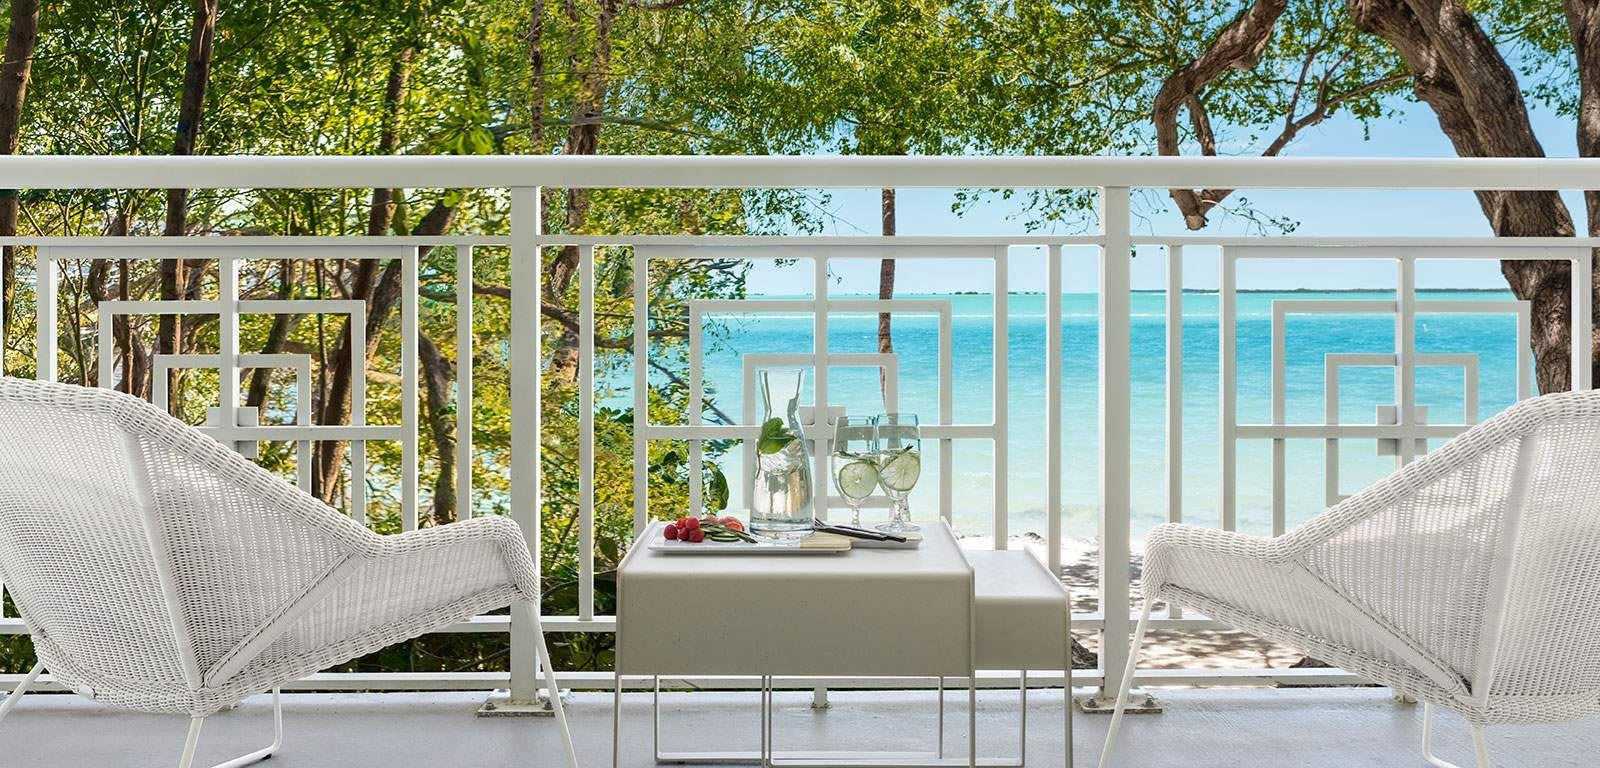 Exterior Shot of Suite Balcony located at Baker's Cay Resort